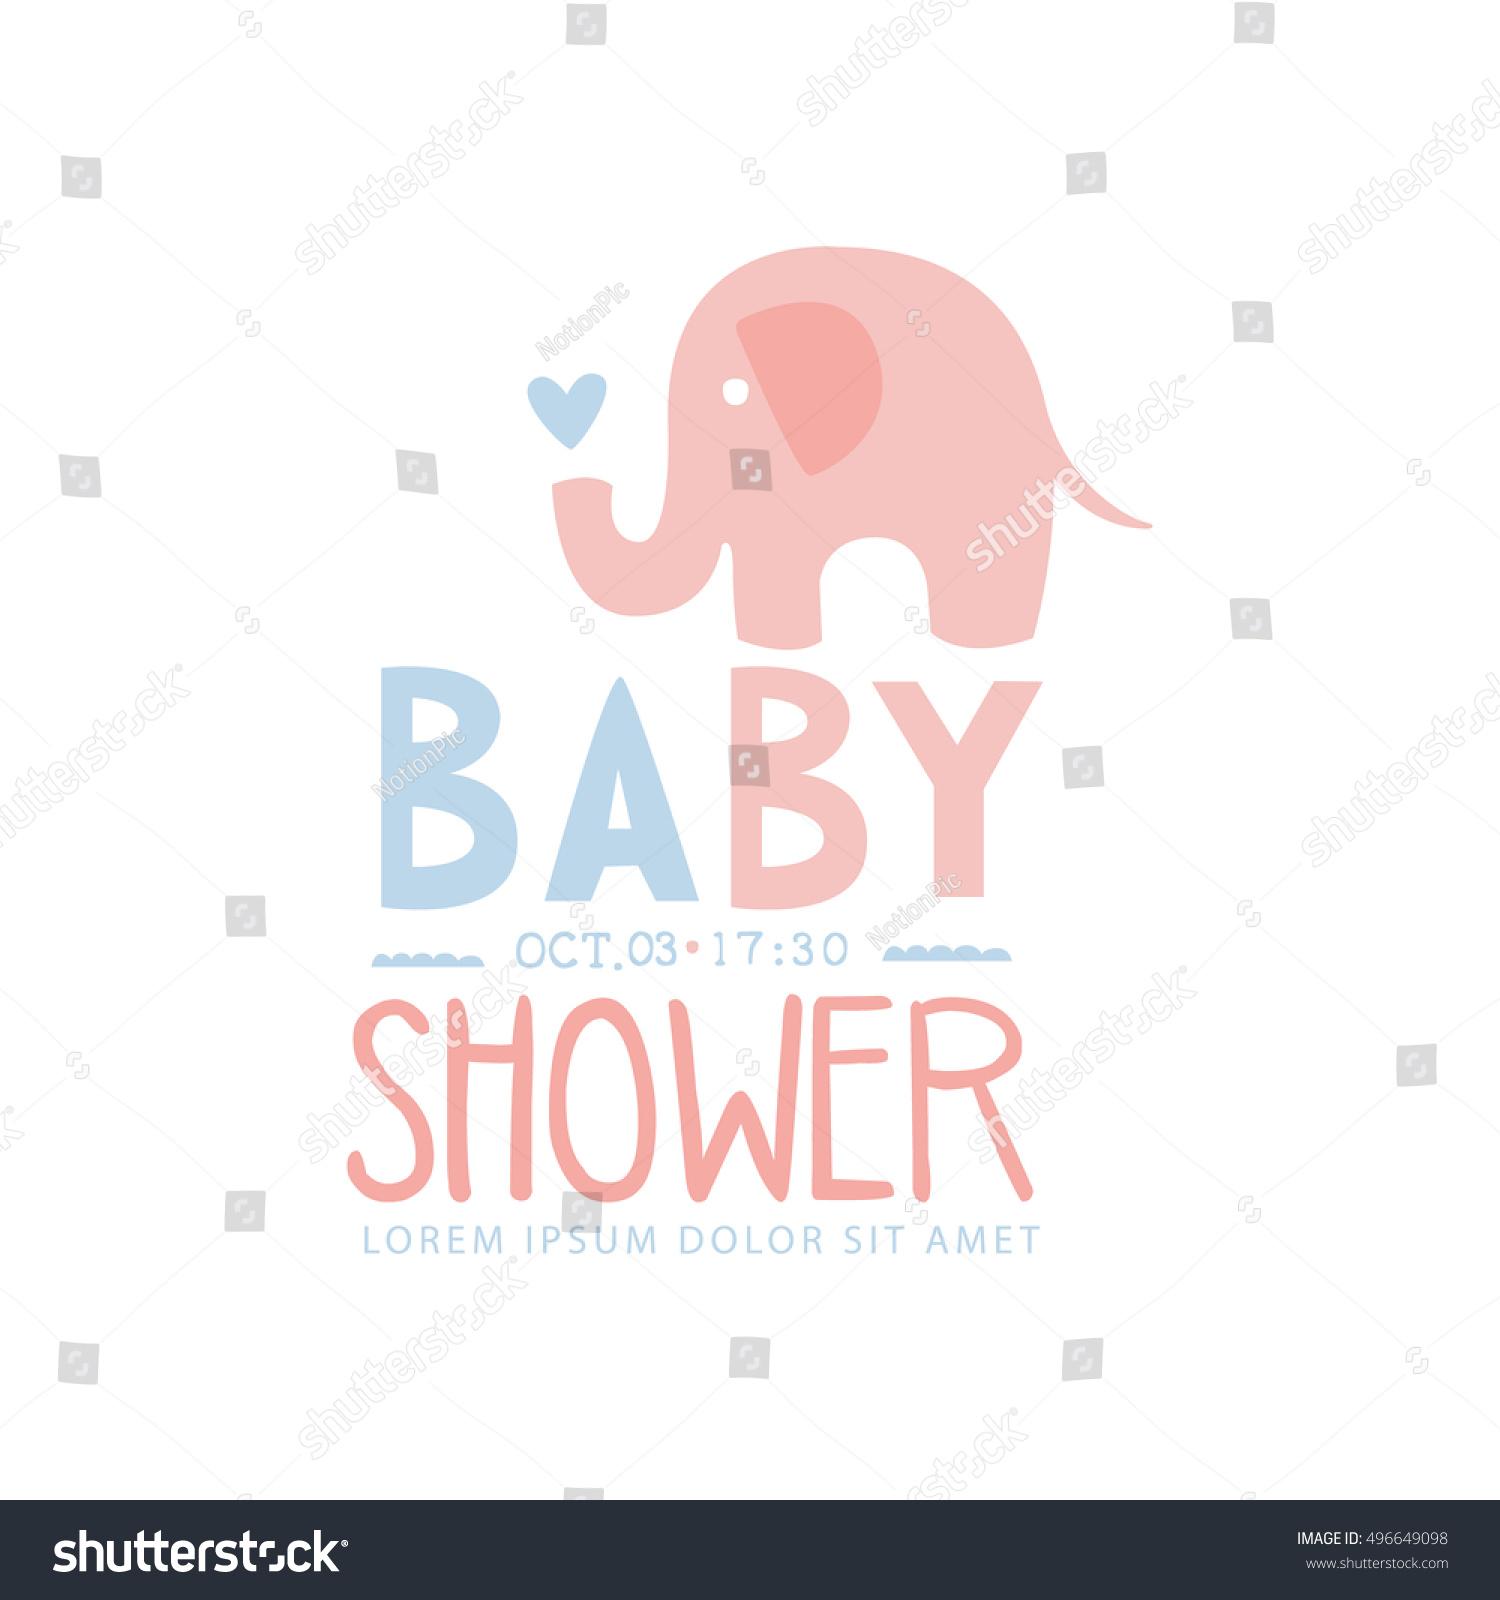 Baby Shower Invitation Design Template Toy Stock Vector